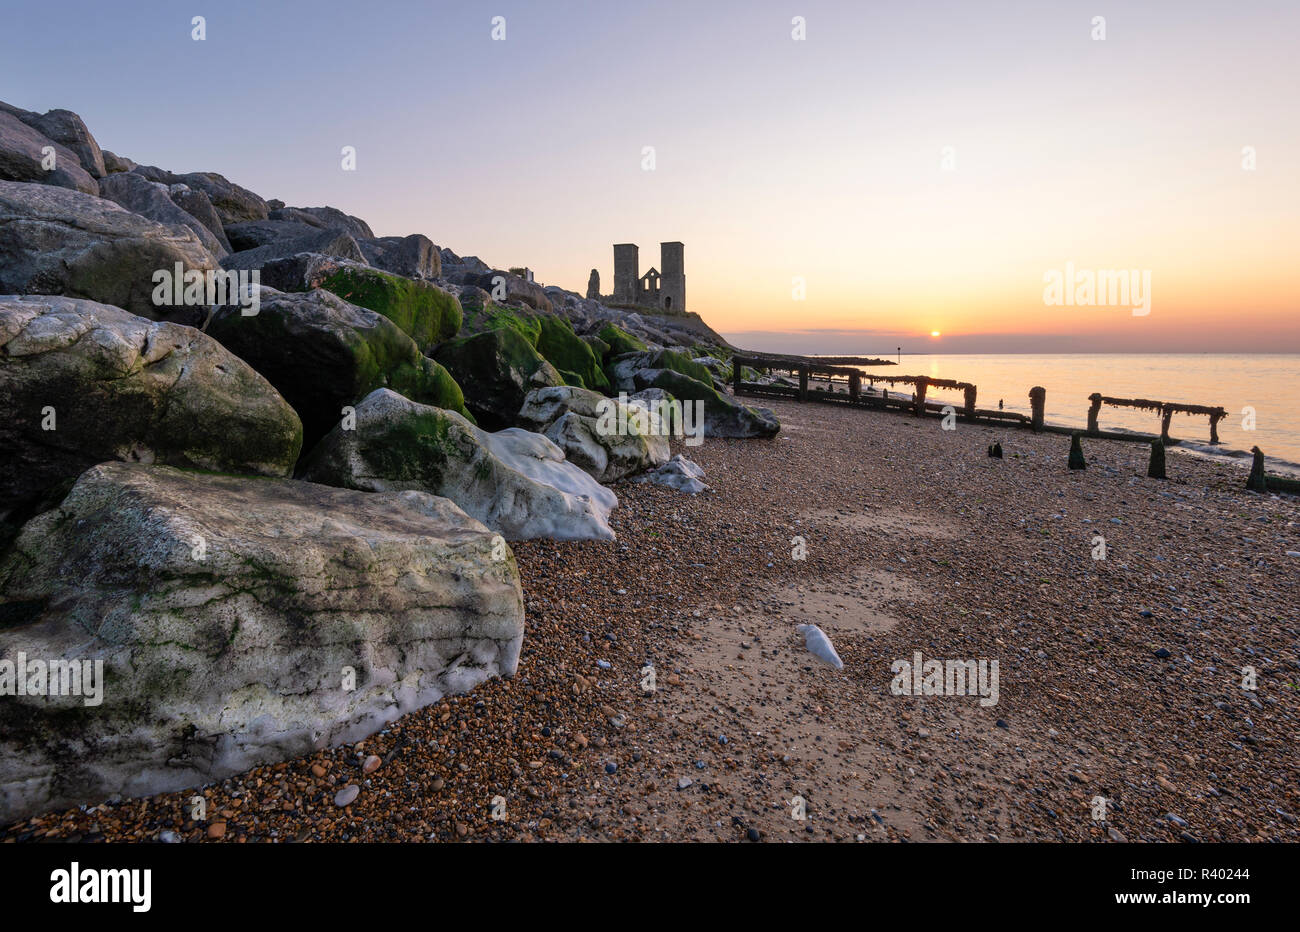 Reculver Towers on the North Kent coast near Herne Bay at sunset. Stock Photo